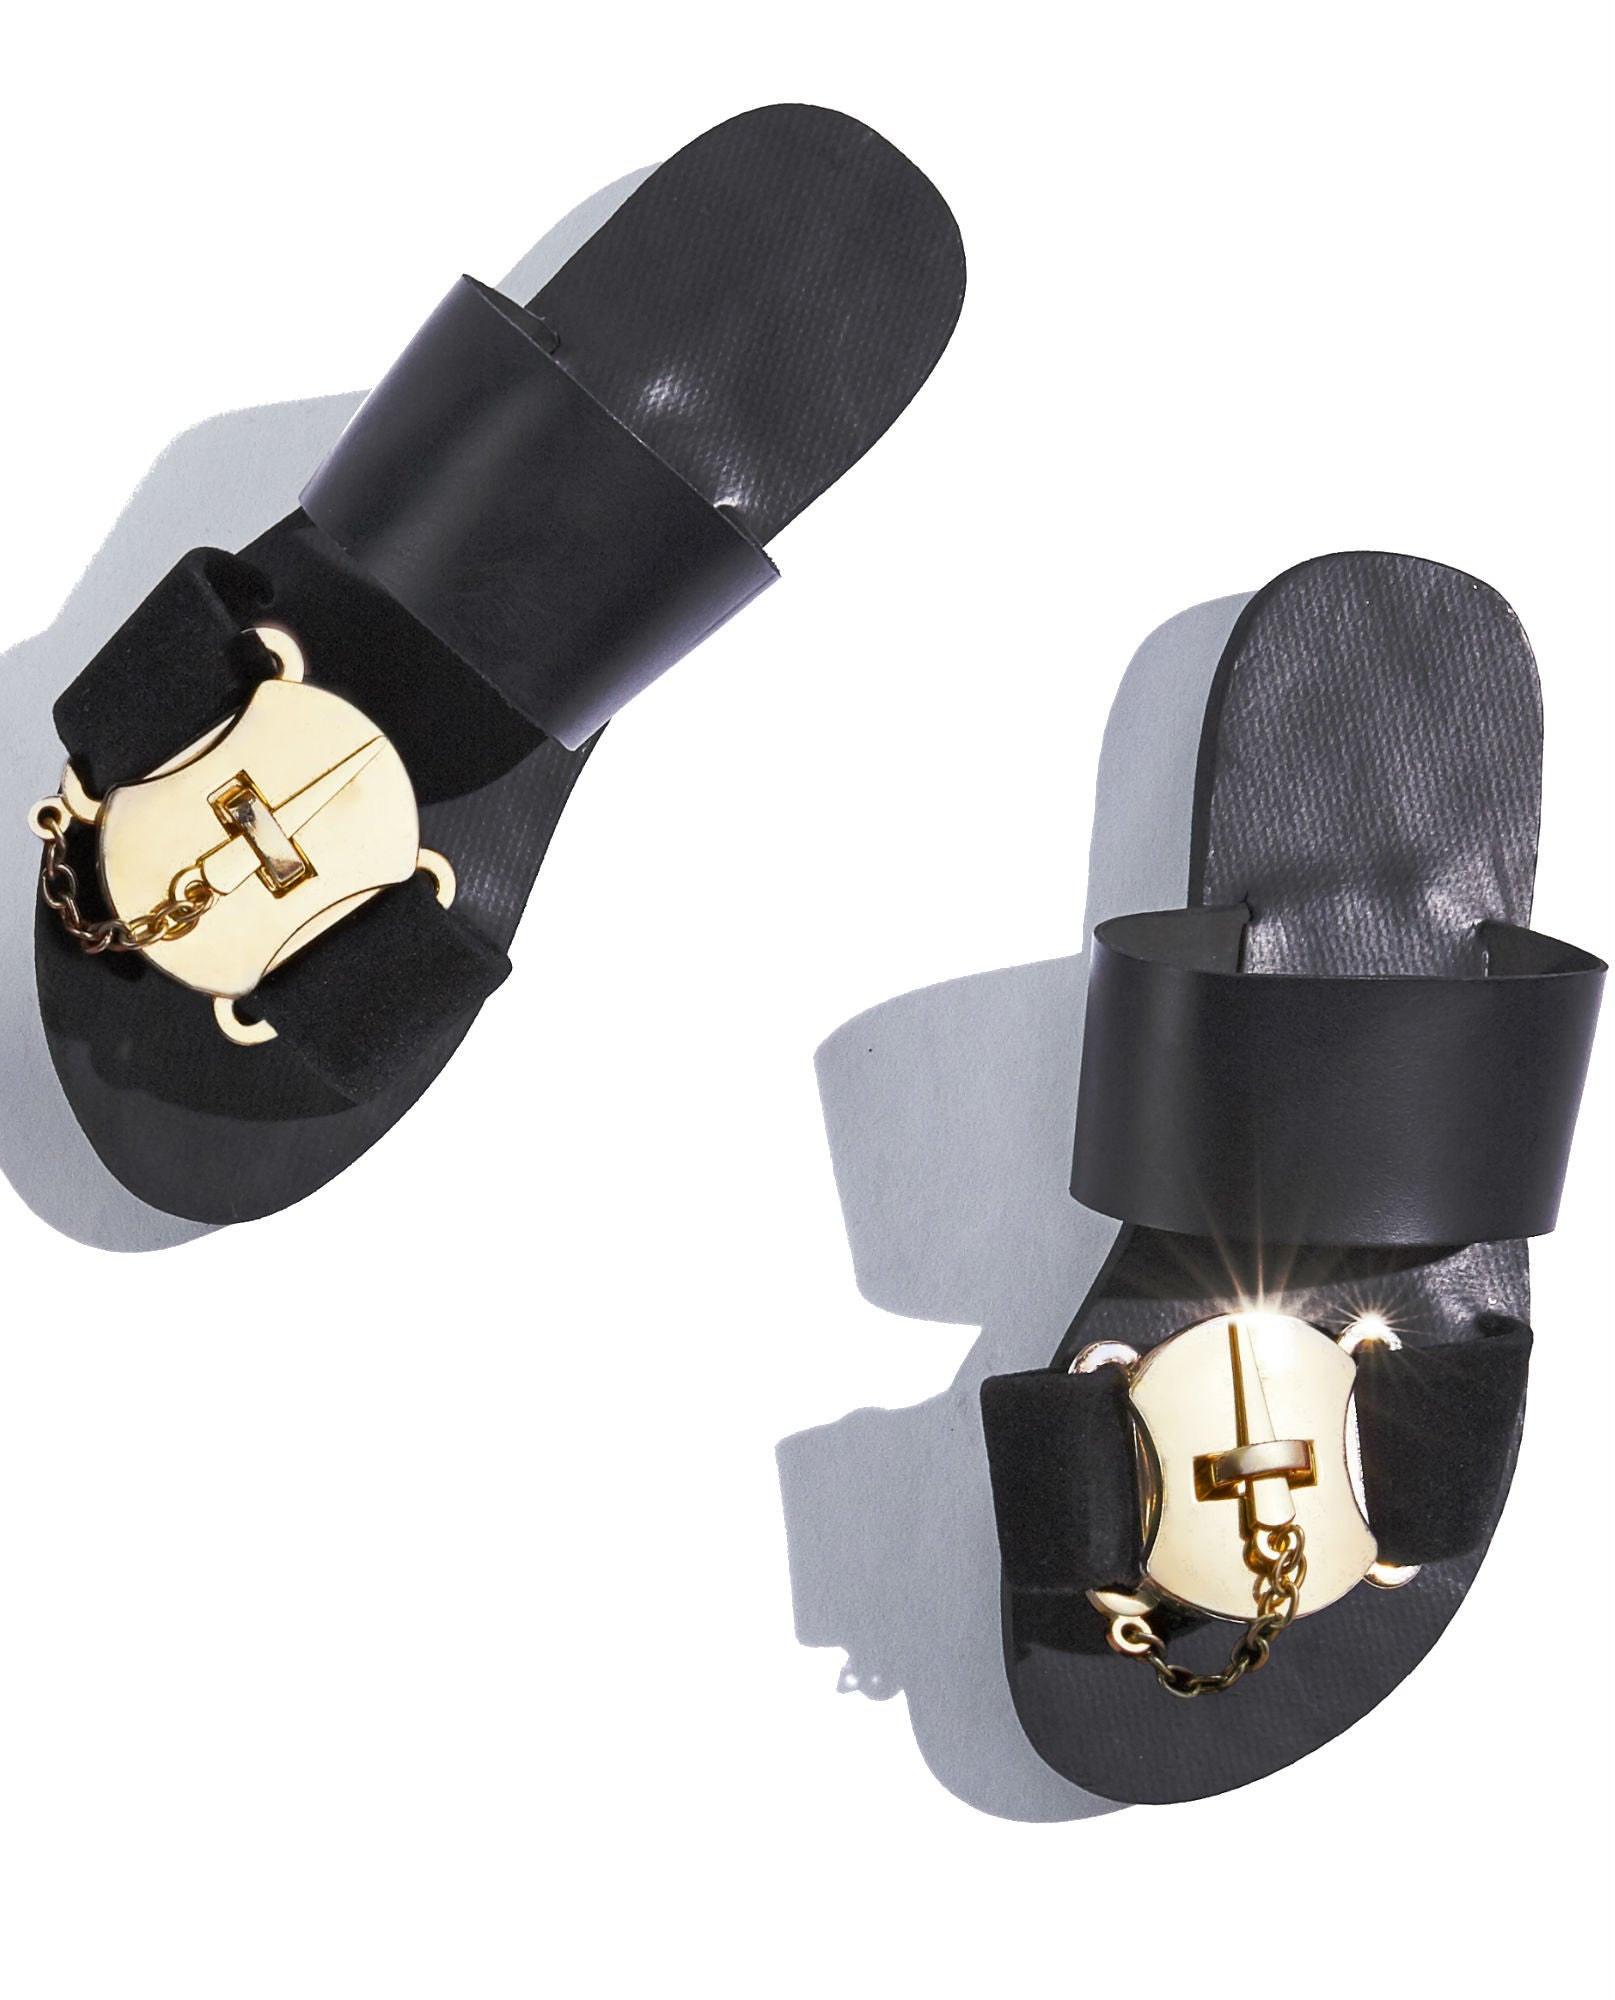 Mifani - Black Slide Sandal - The Velvet Closet